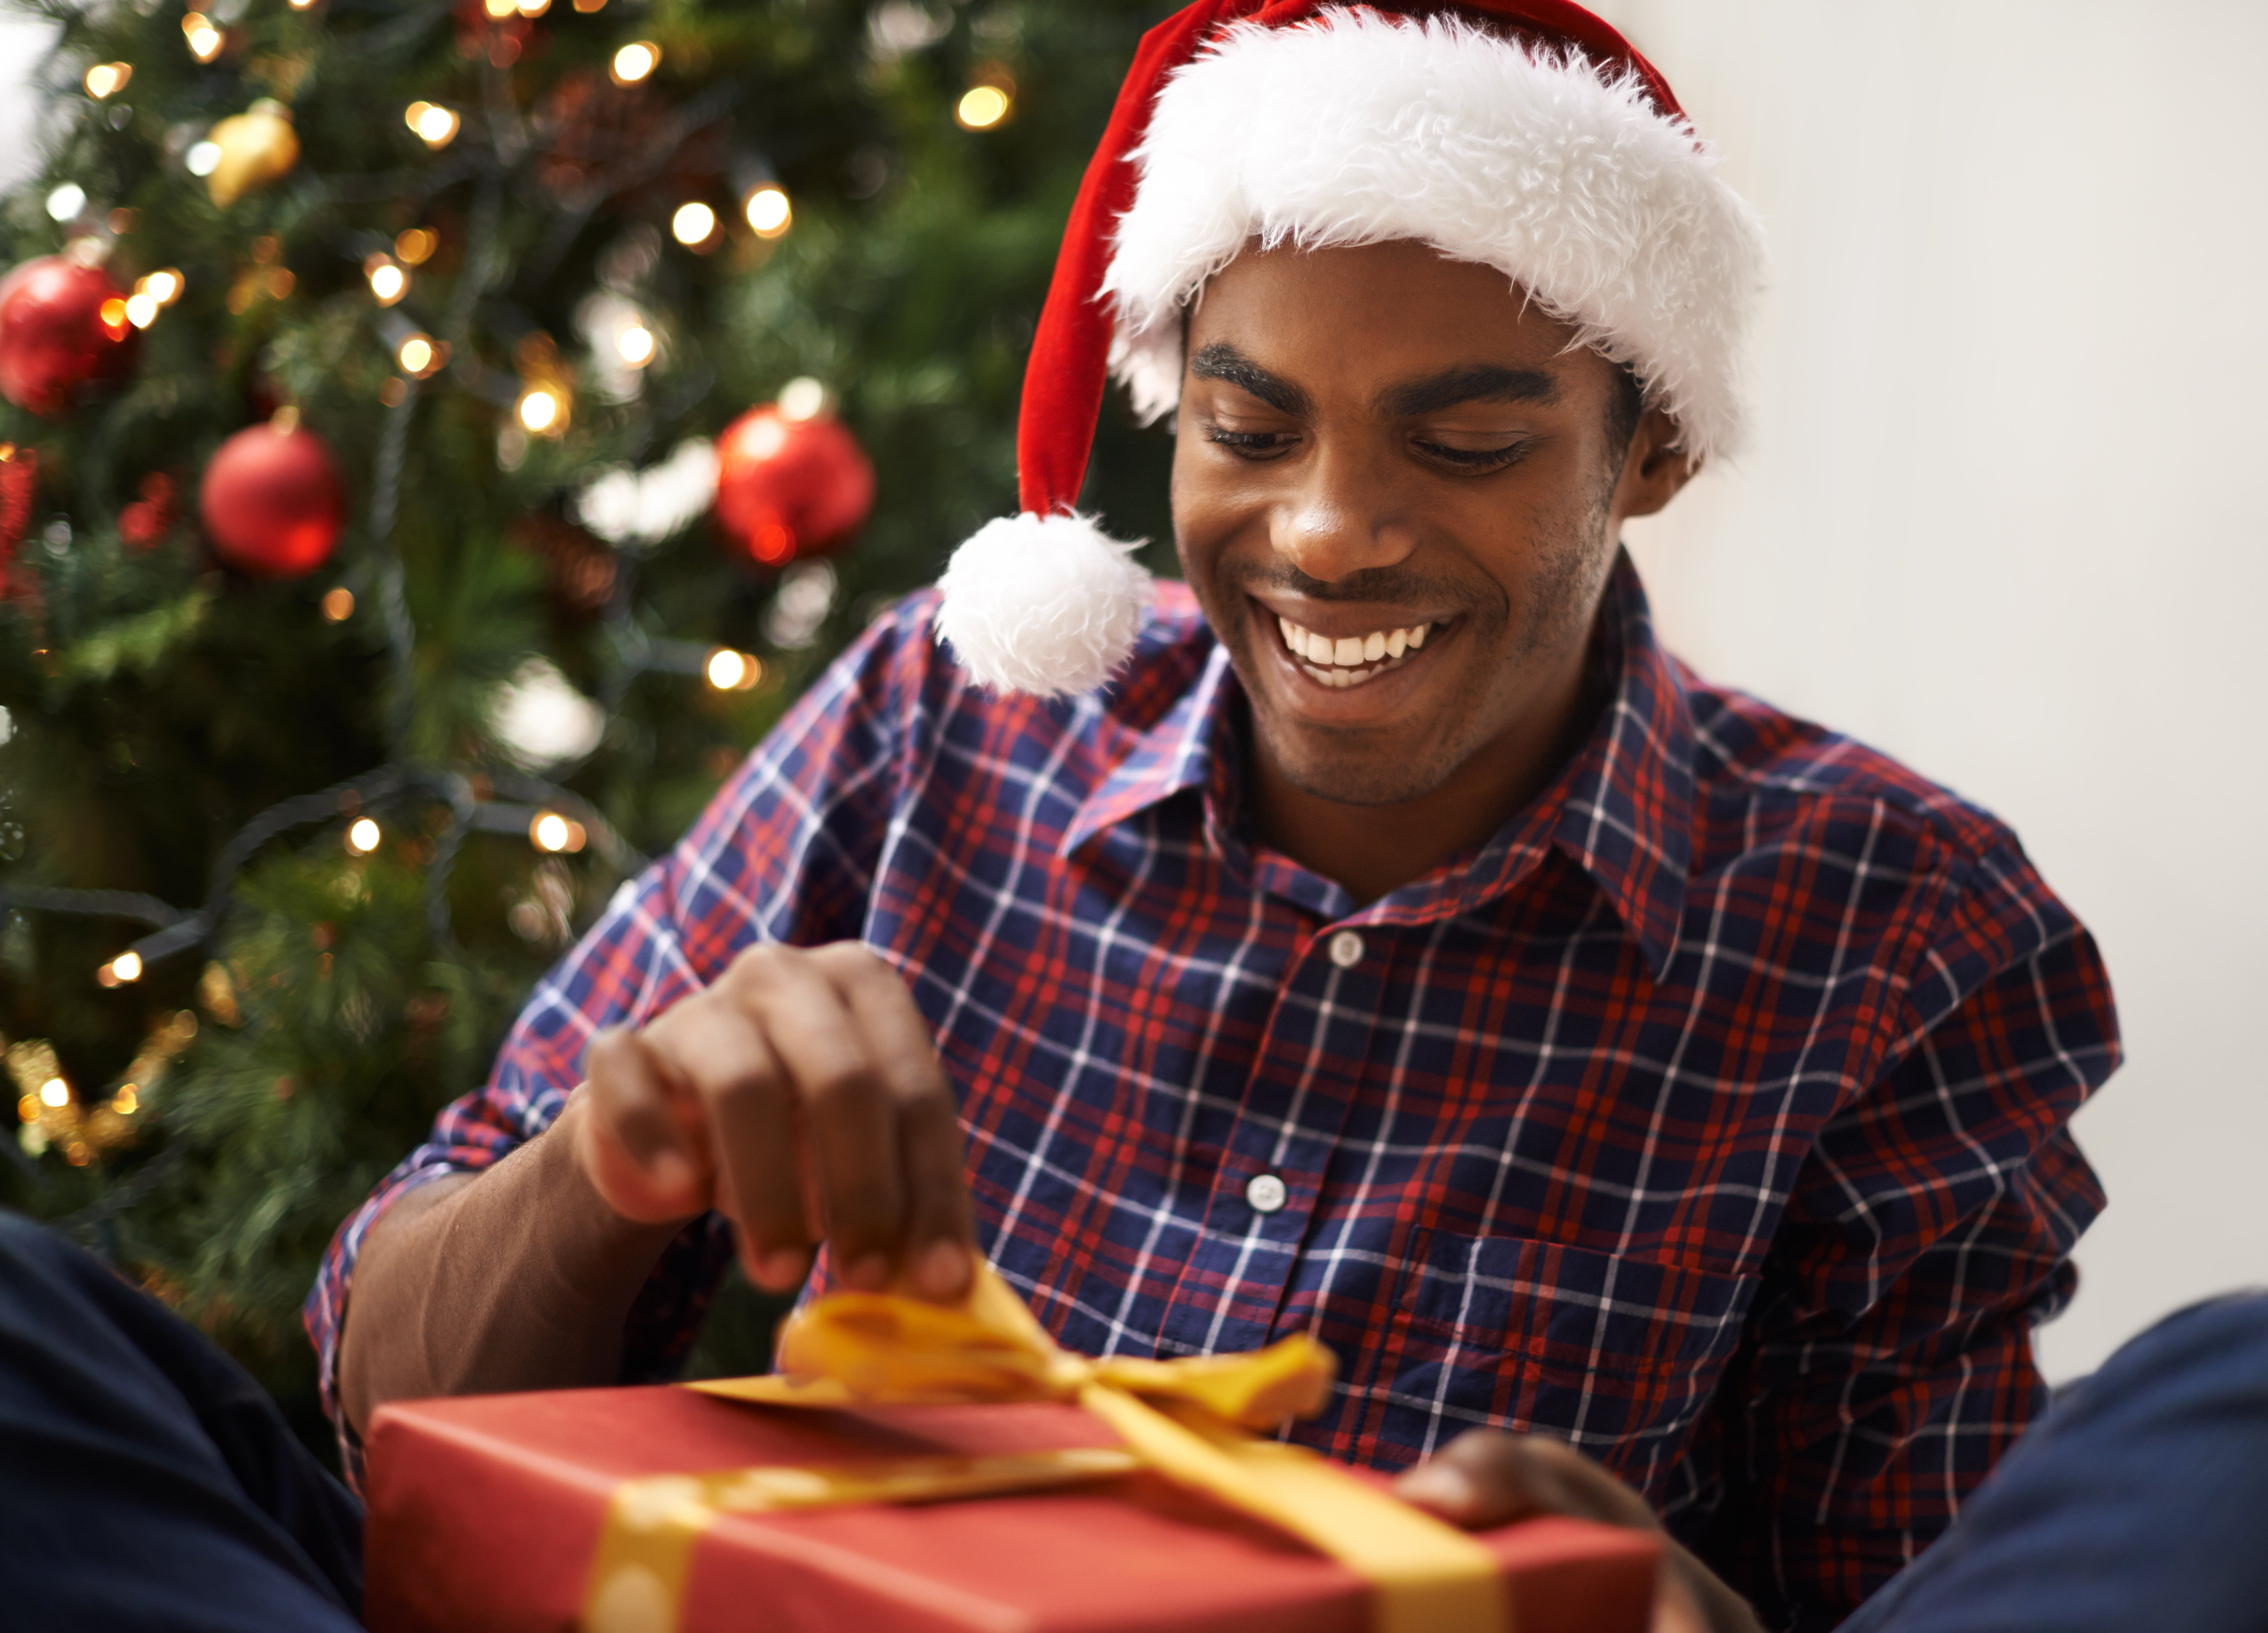 8 great last minute christmas gift ideas for the guy who already has everything - Best Last Minute Christmas Gifts